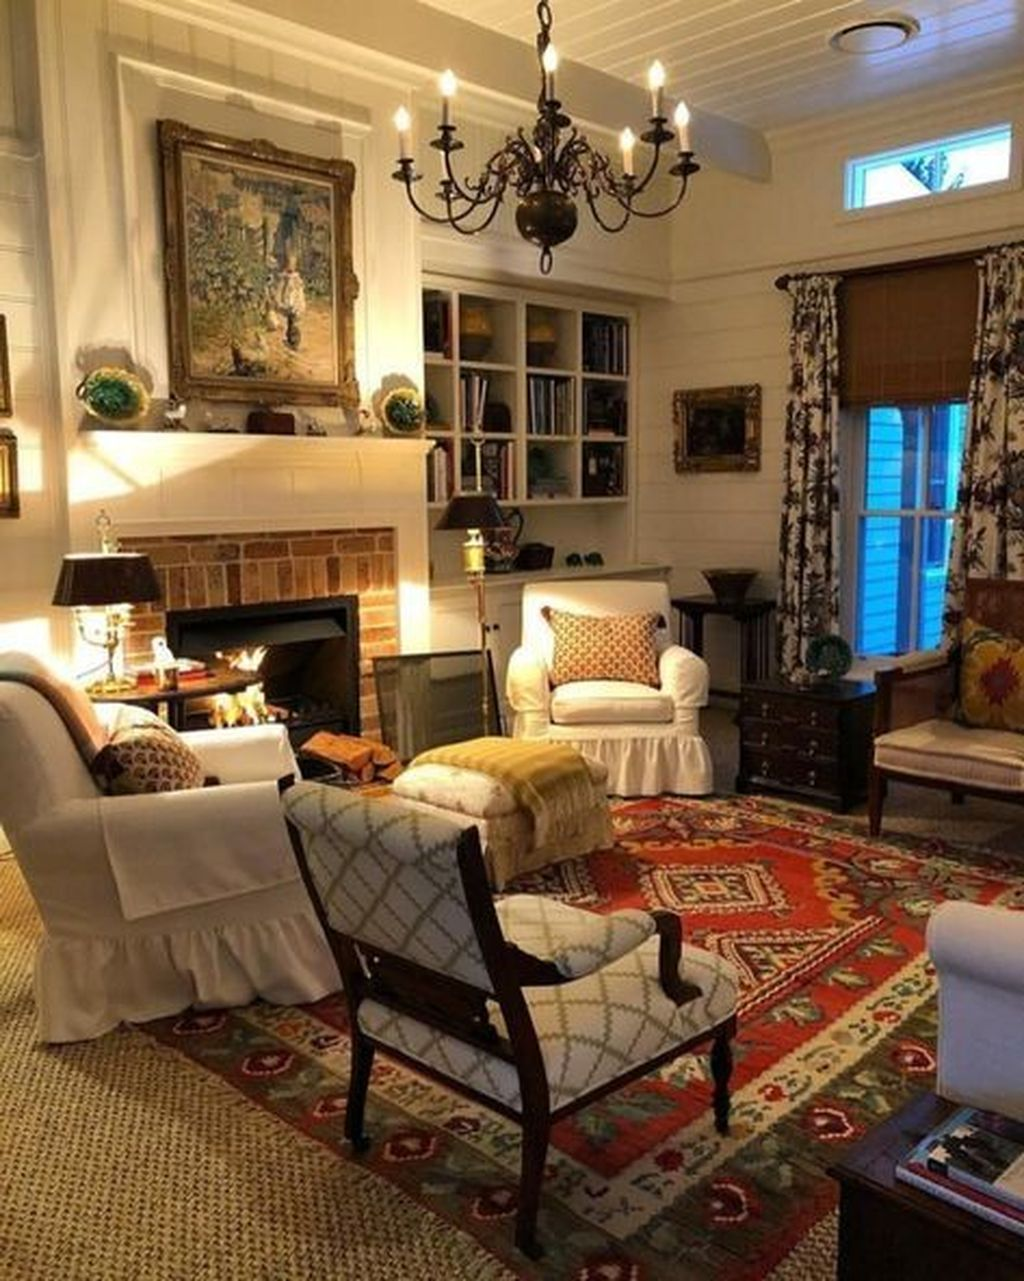 31 Fascinating Traditional Living Room Decor Ideas You Will Love Country Living Room Design French Country Living Room Living Room Decor Country